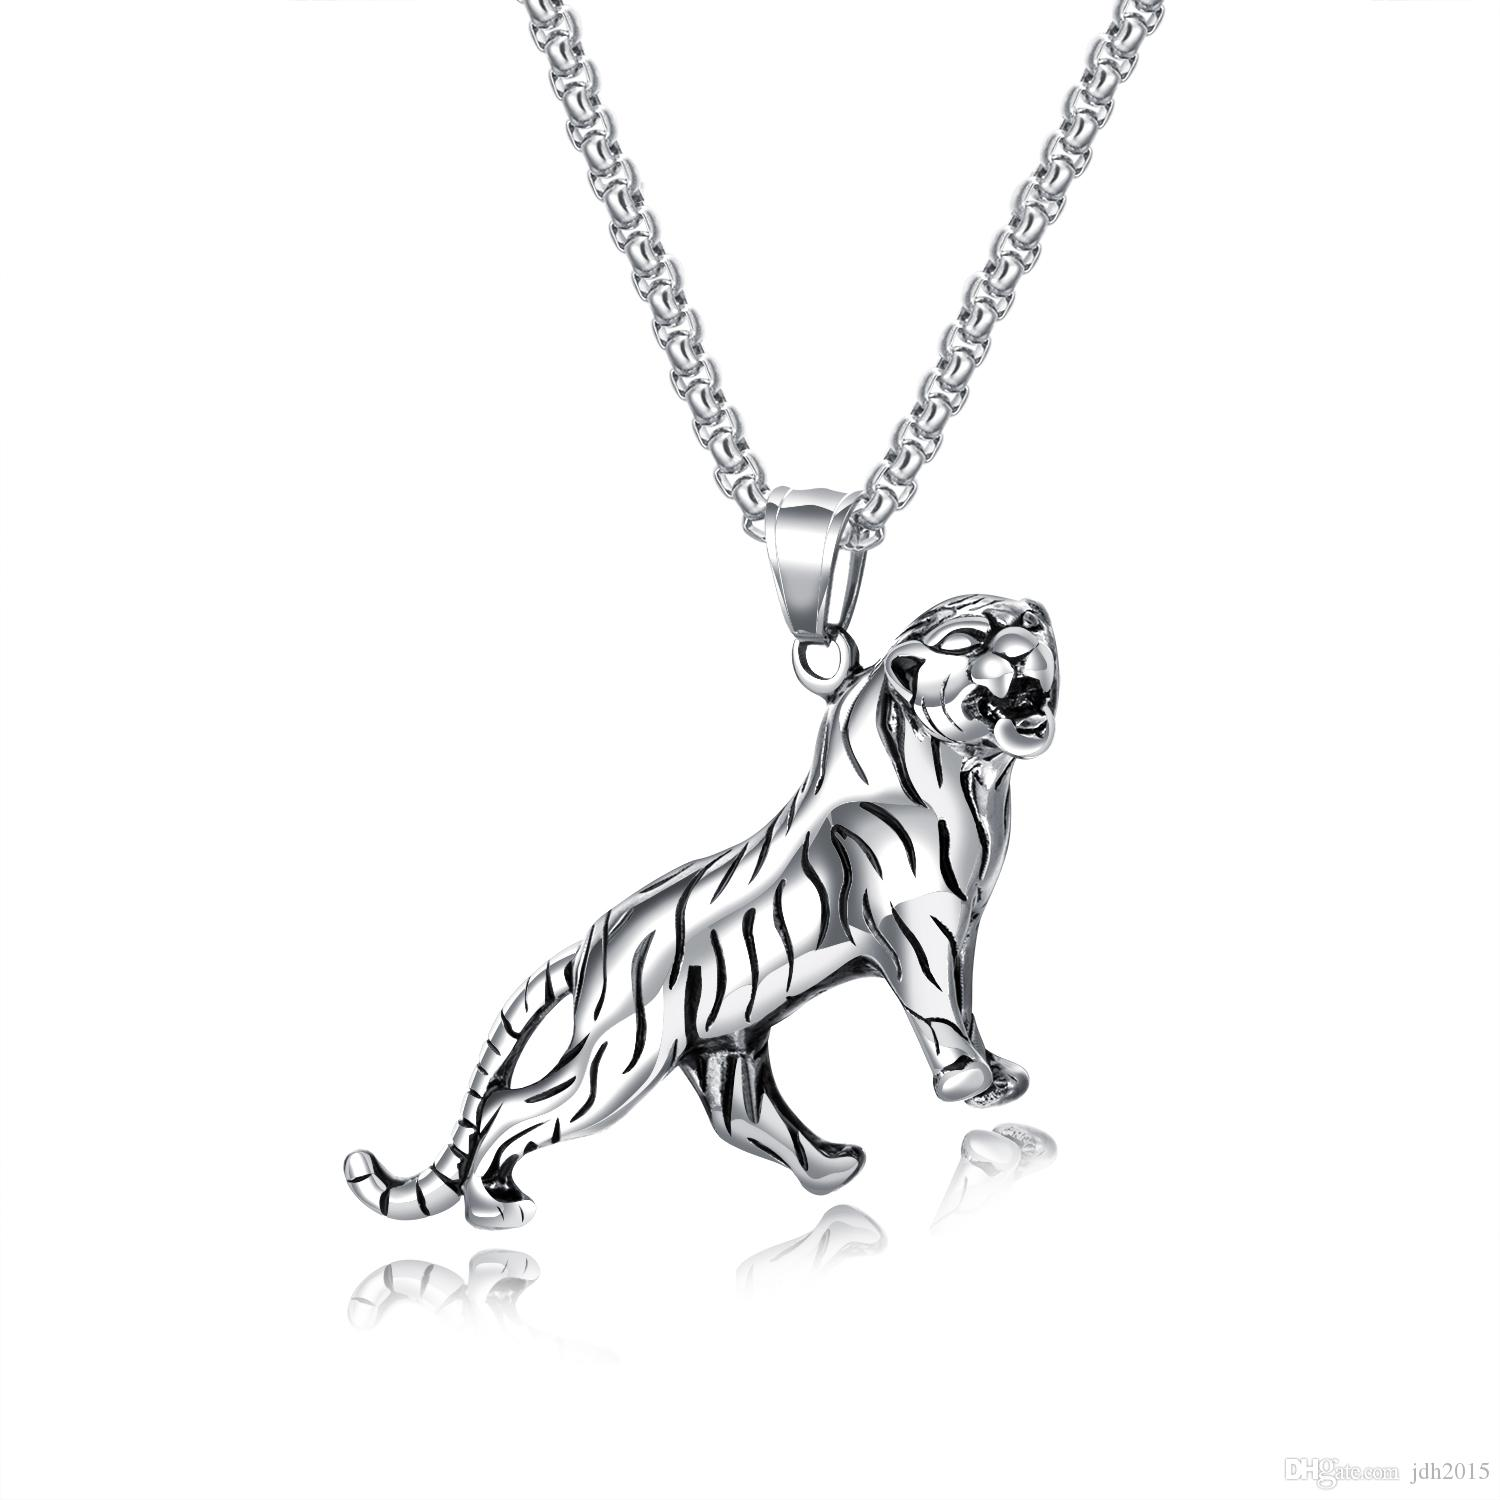 Wild Fierce Stainless Steel Animal Tiger Pendant Necklace For Hip Pop Men